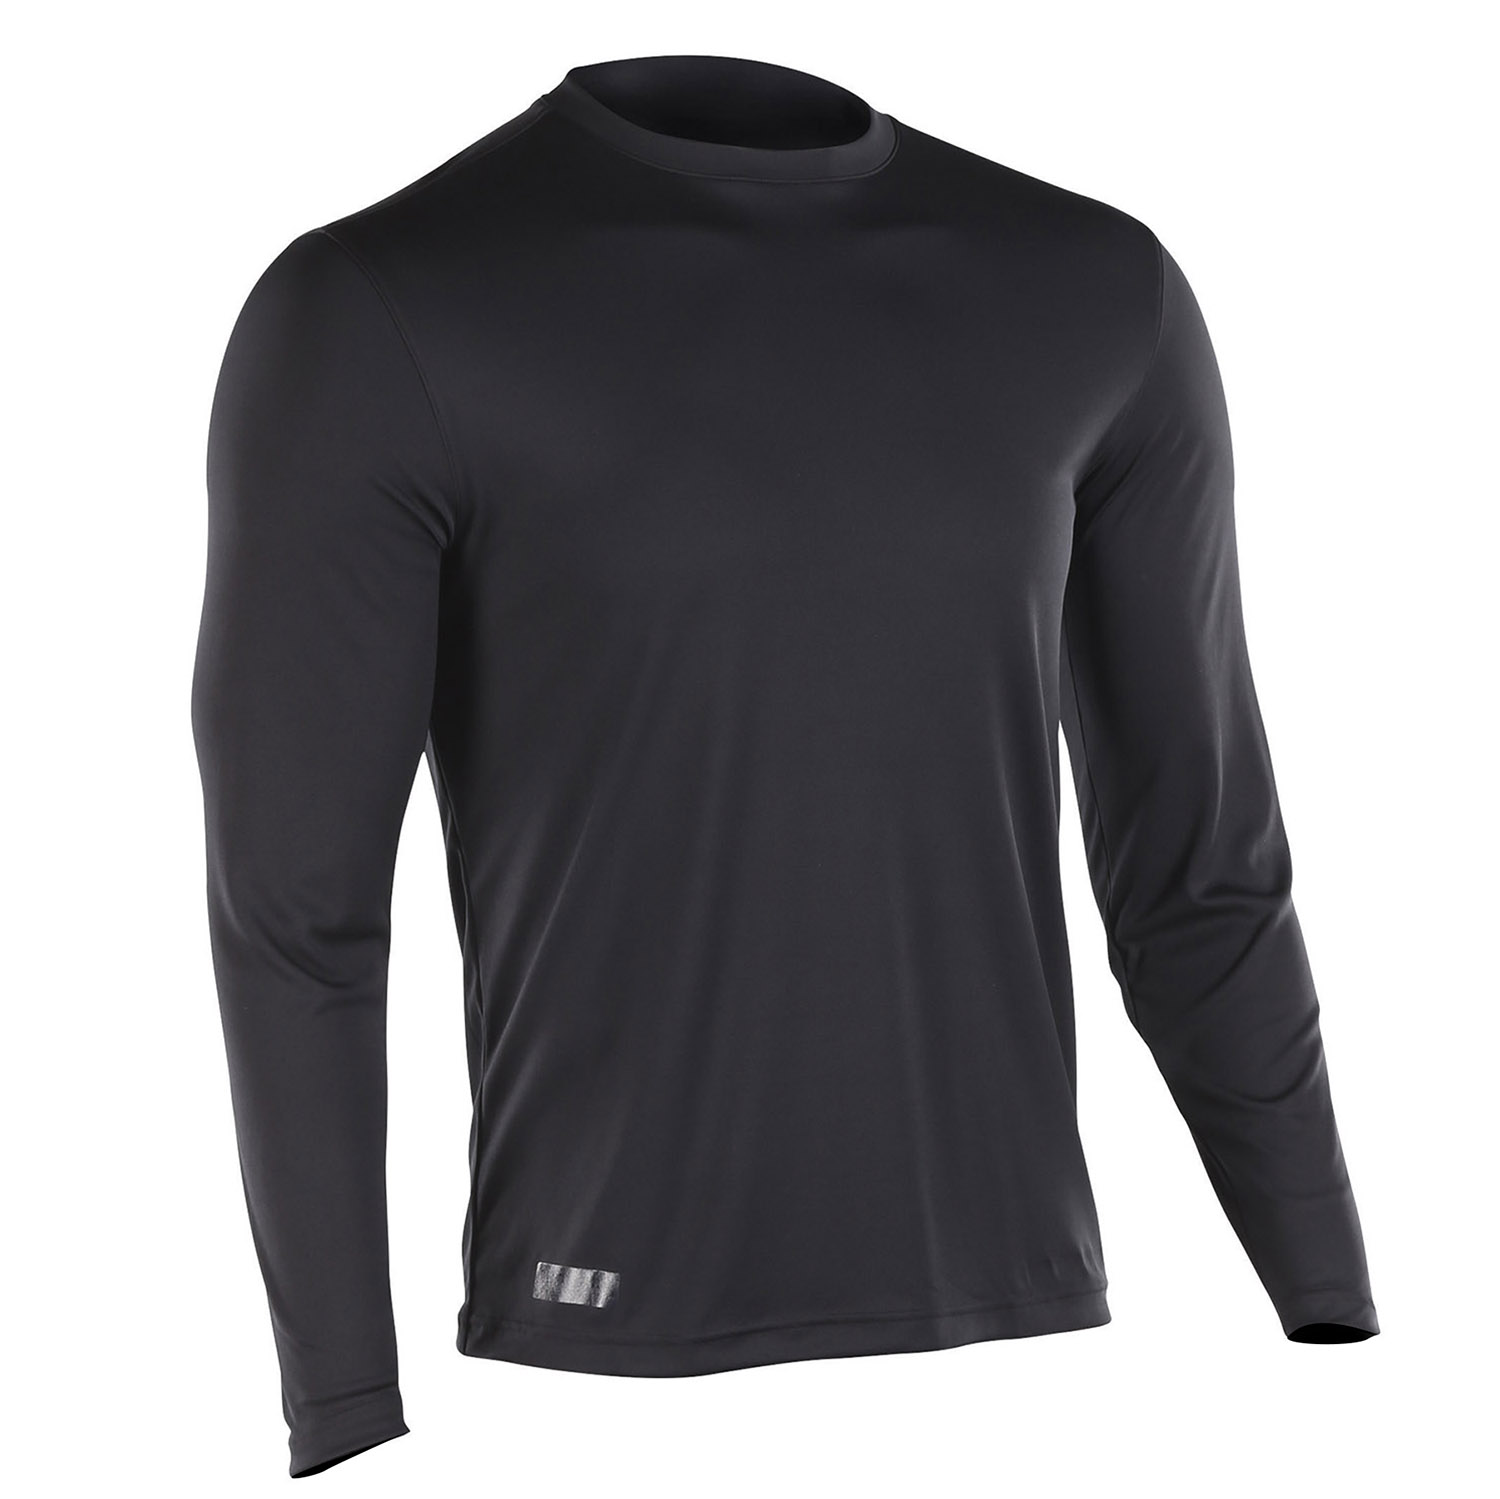 Under Armour HeatGear Tactical Long Sleeve T-Shirt